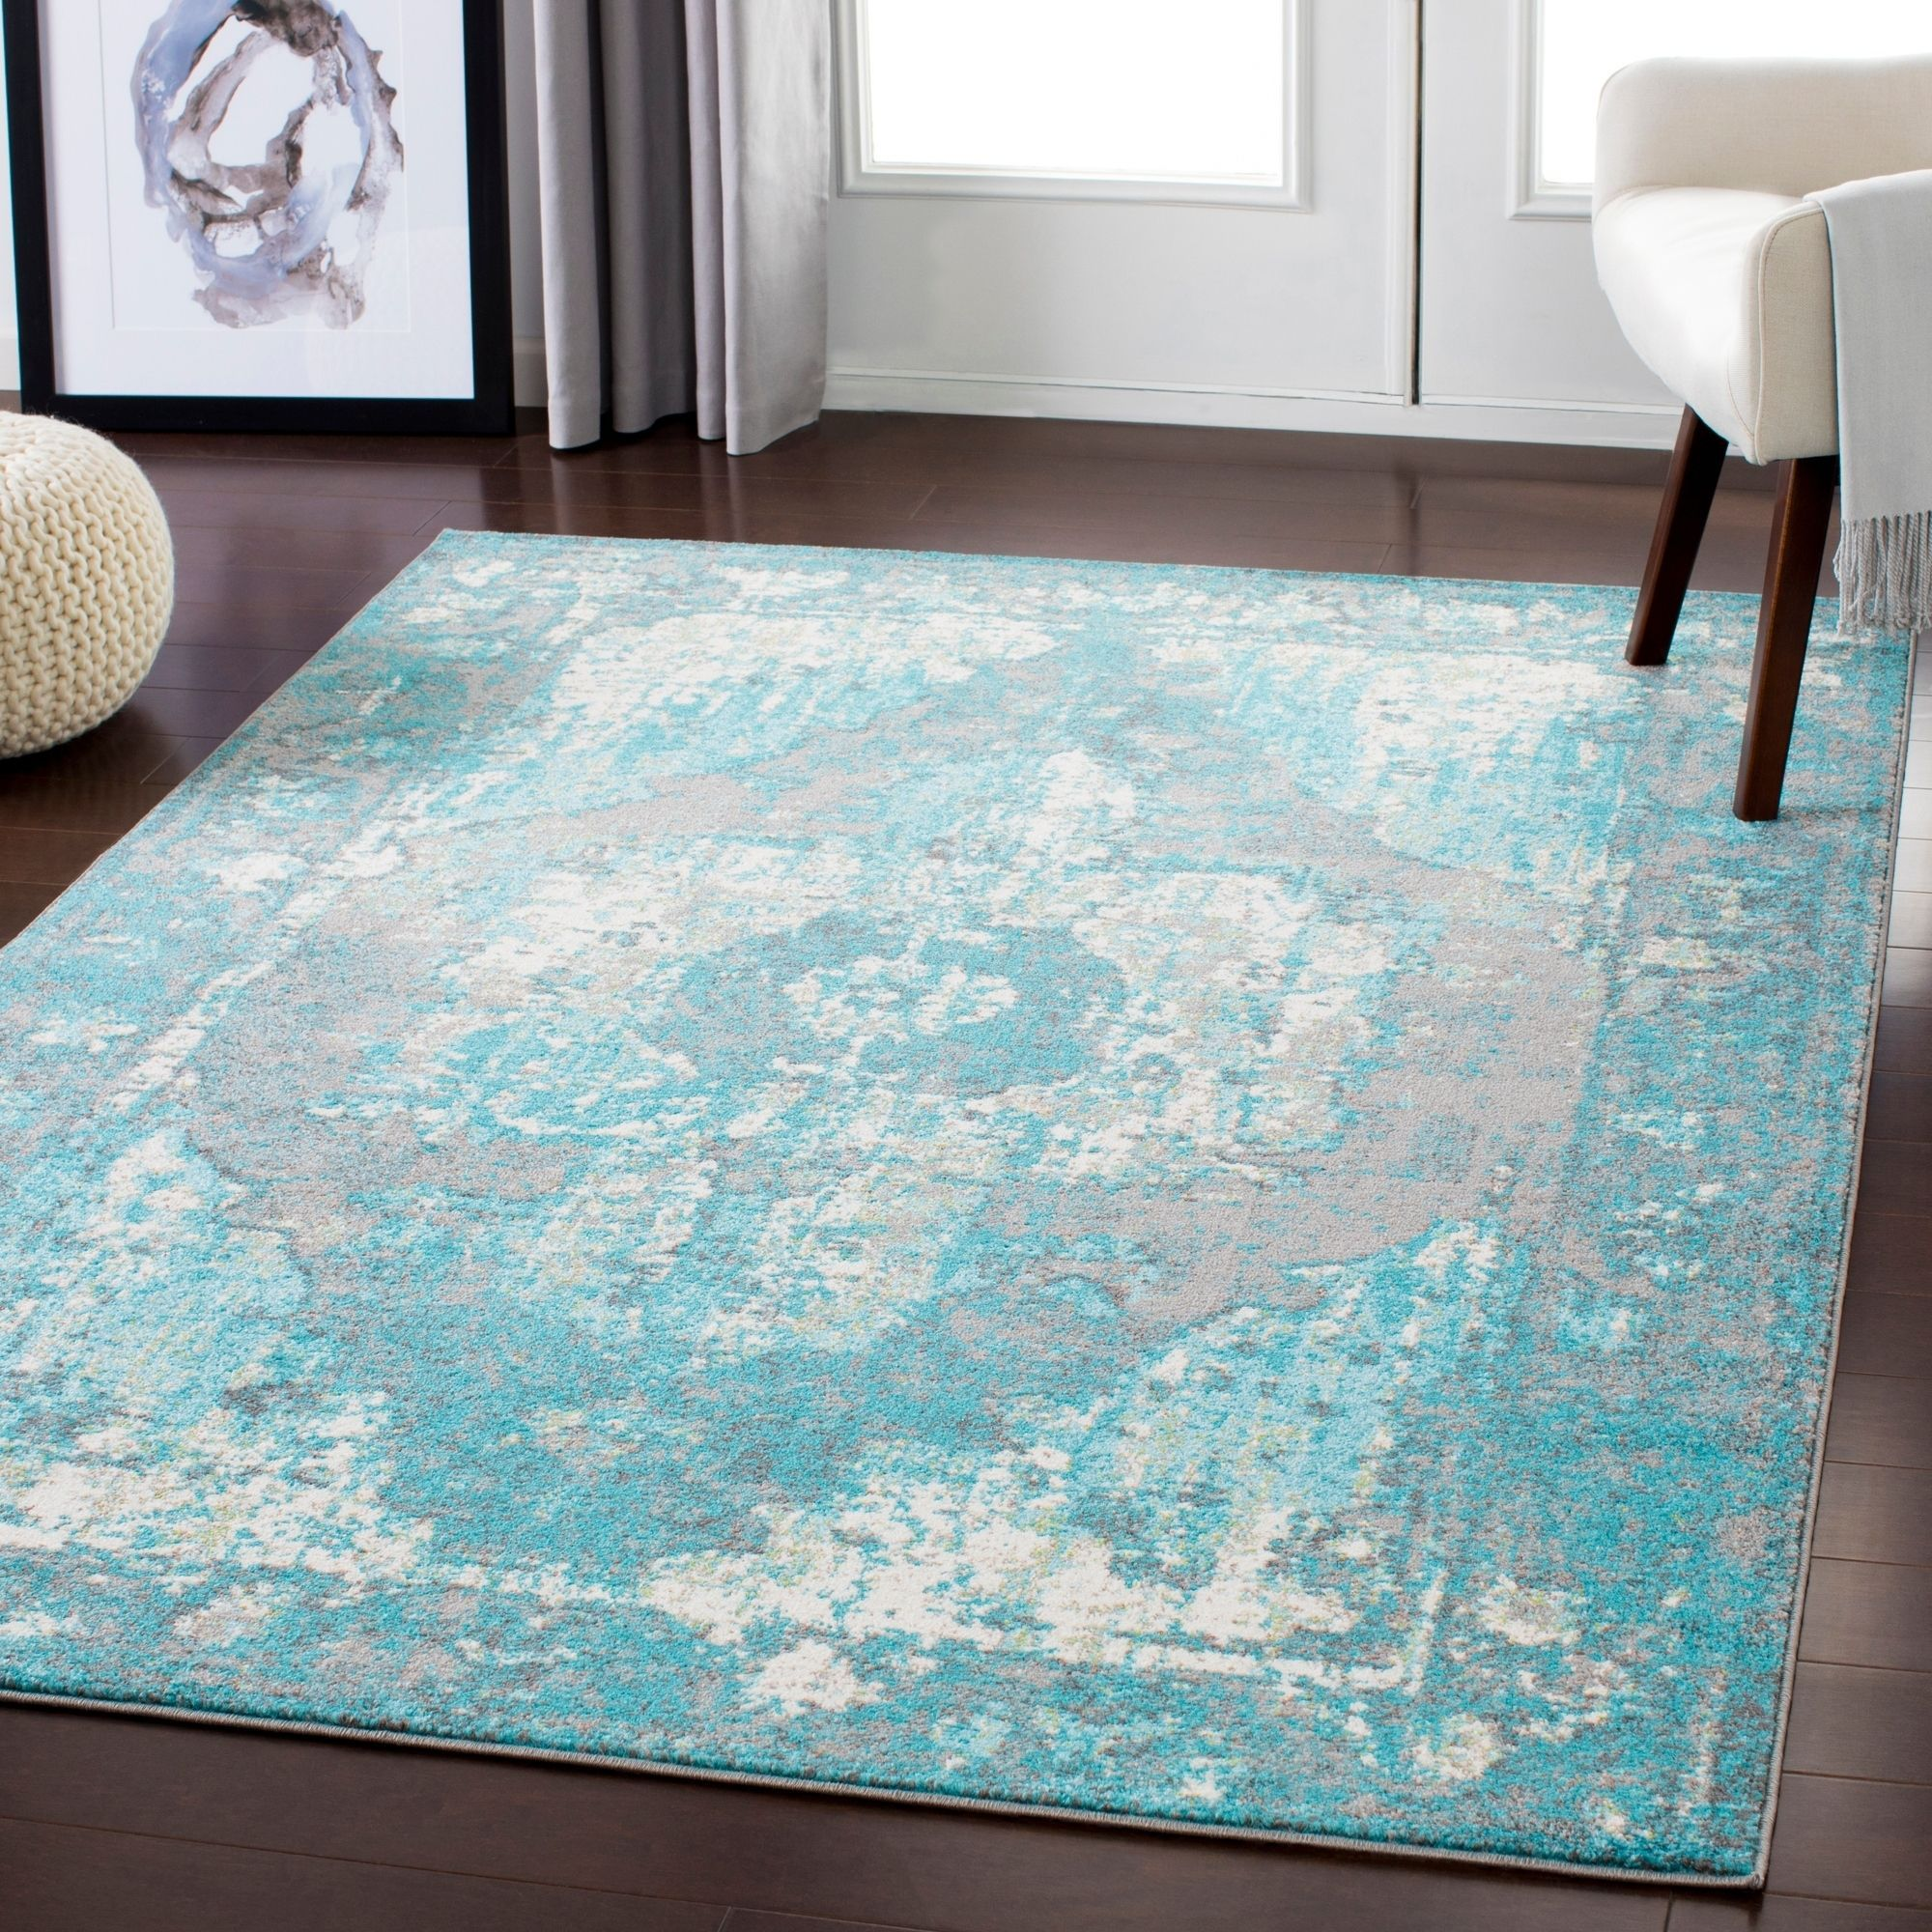 Buy Area Rugs Online At Overstock Our Best Rugs Deals With